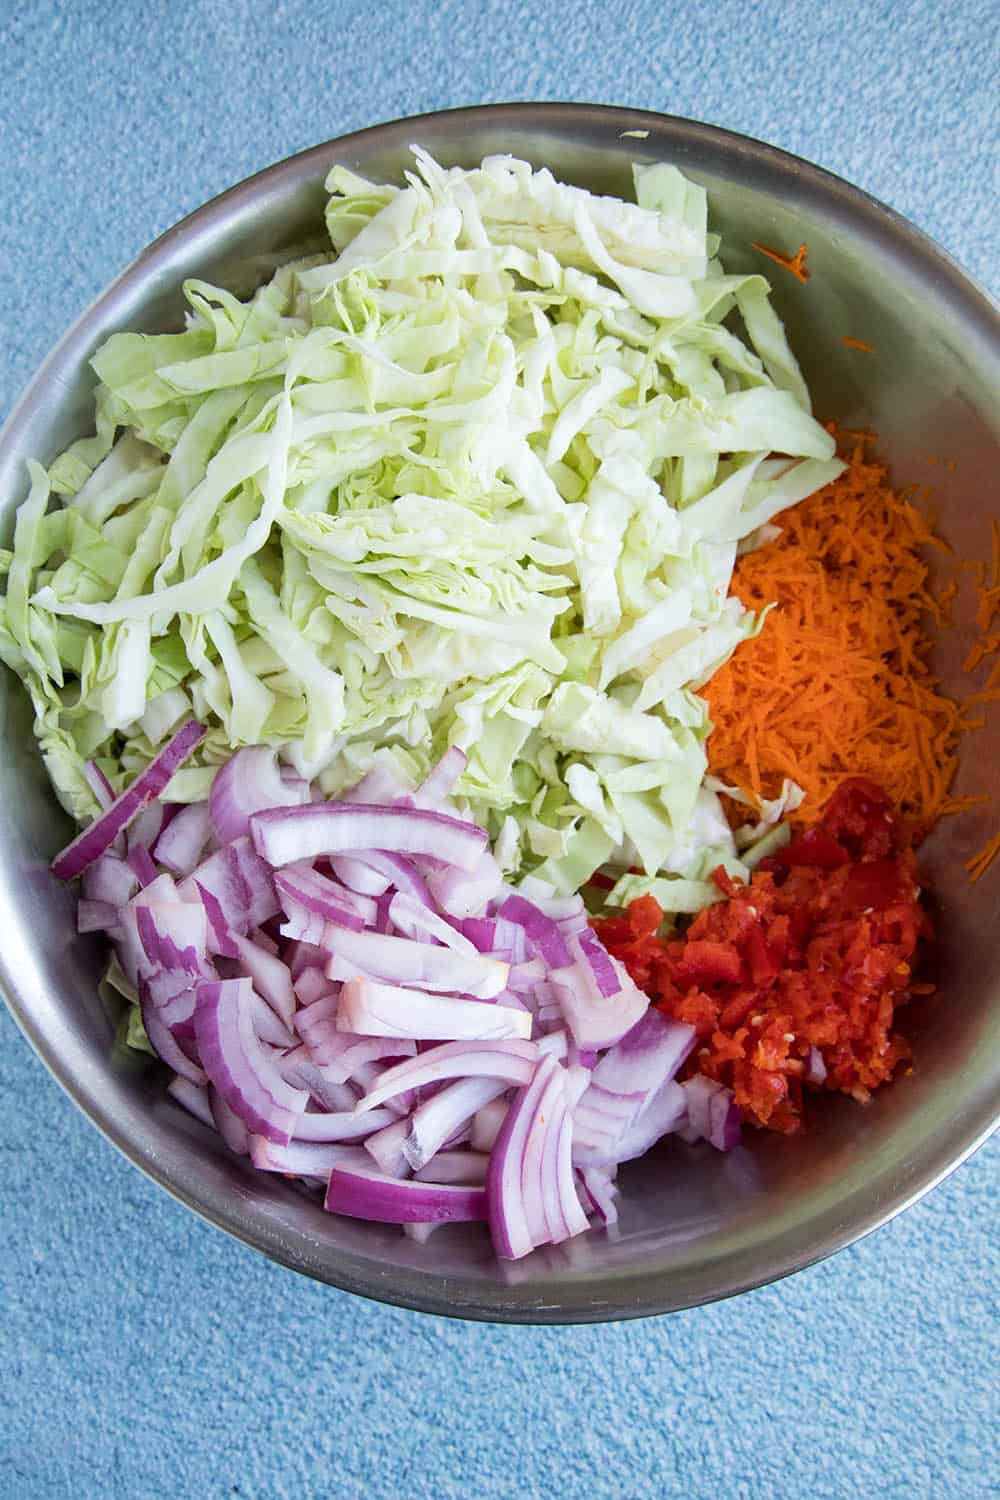 Shredded cabbage, onion, bell pepper and carrot